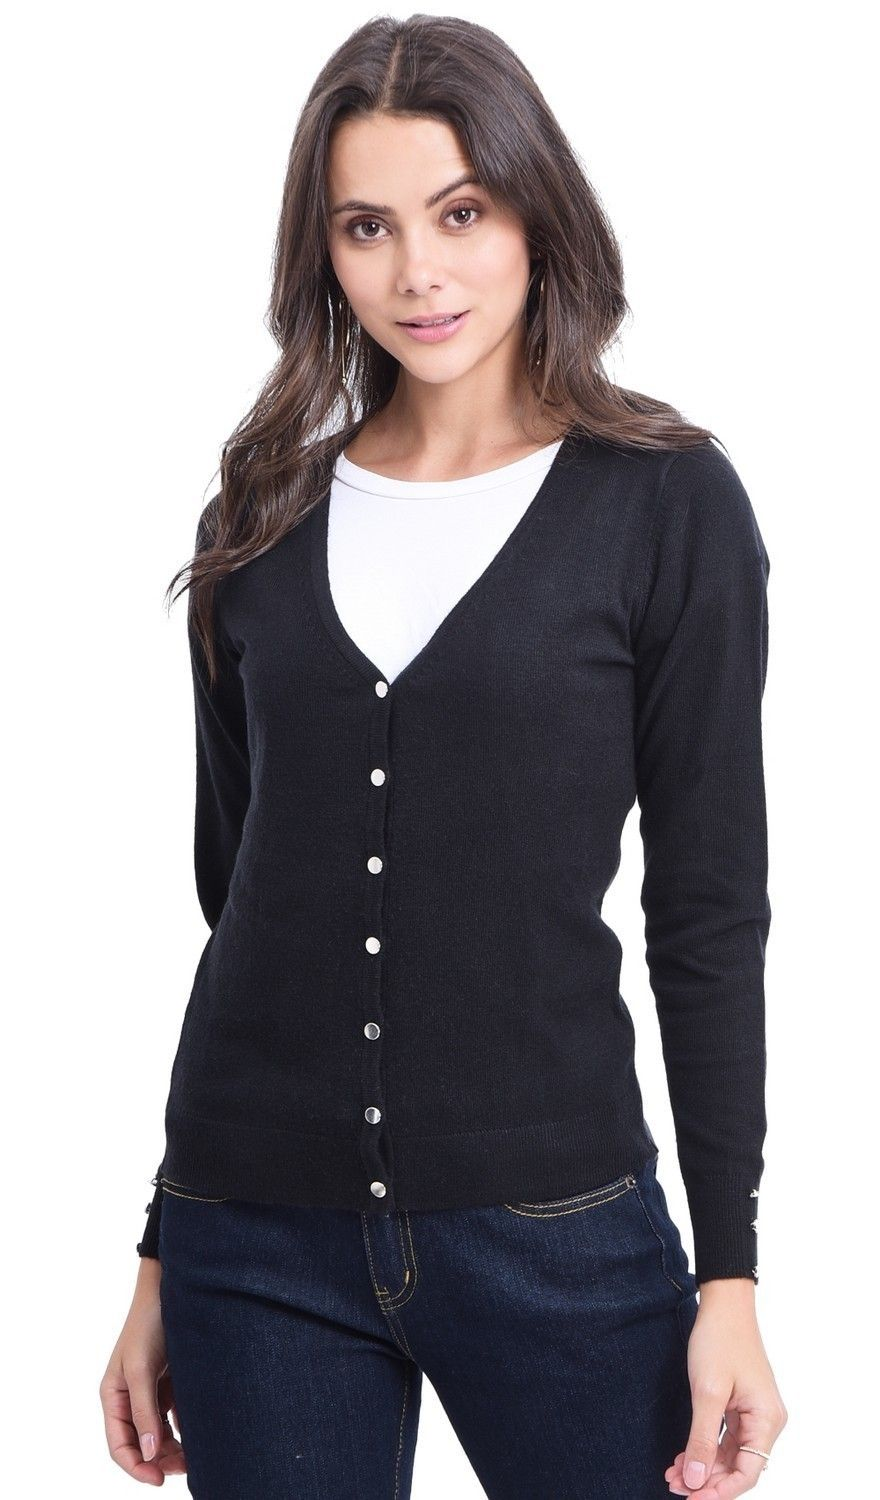 C&JO V-neck Cardigan with Silver Buttons in Black